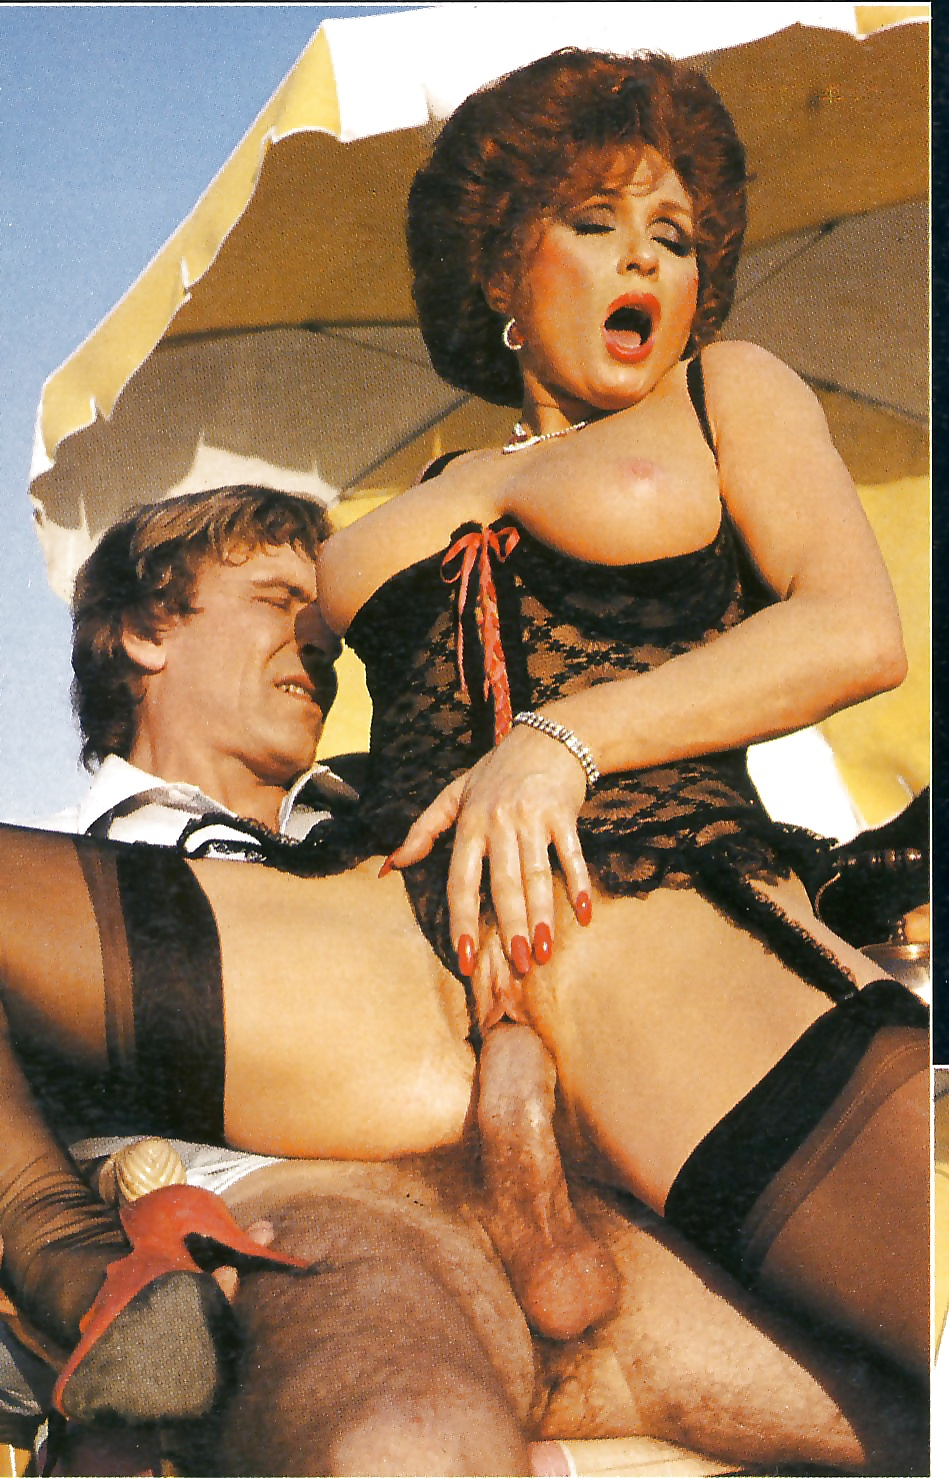 consider, small tits shaved lick cock on beach can suggest visit you